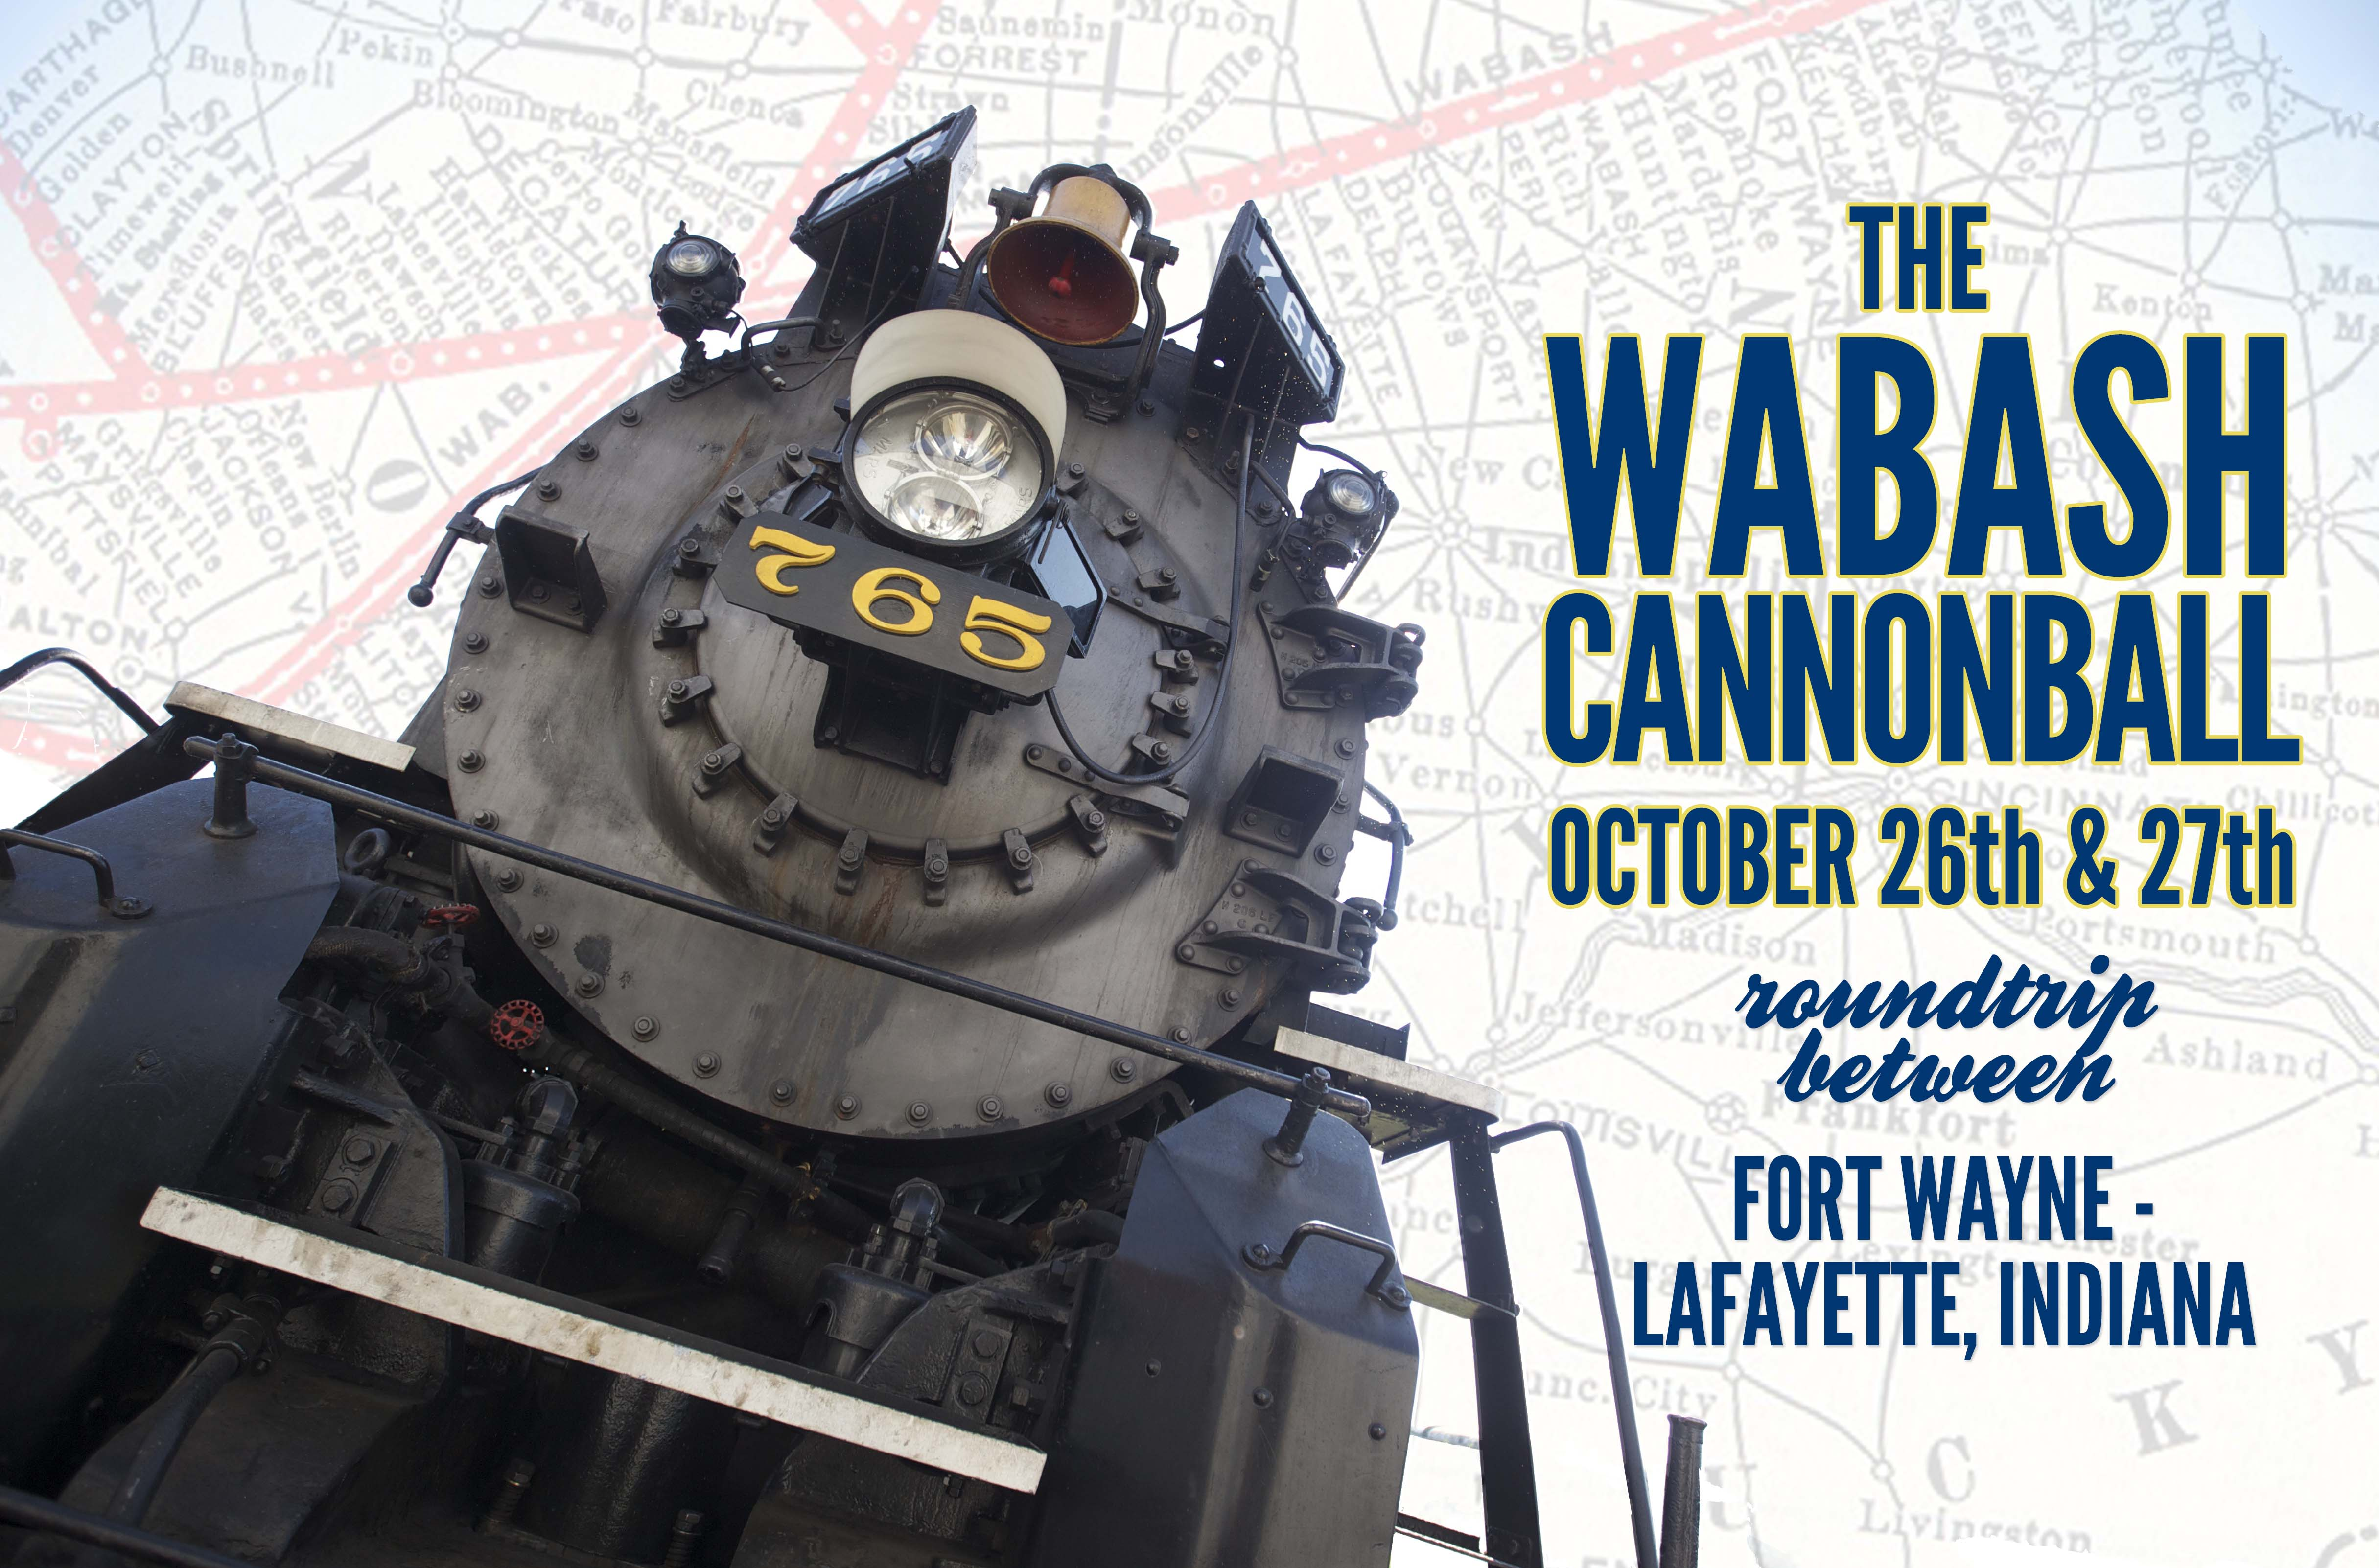 Wabash Cannonball Artwork